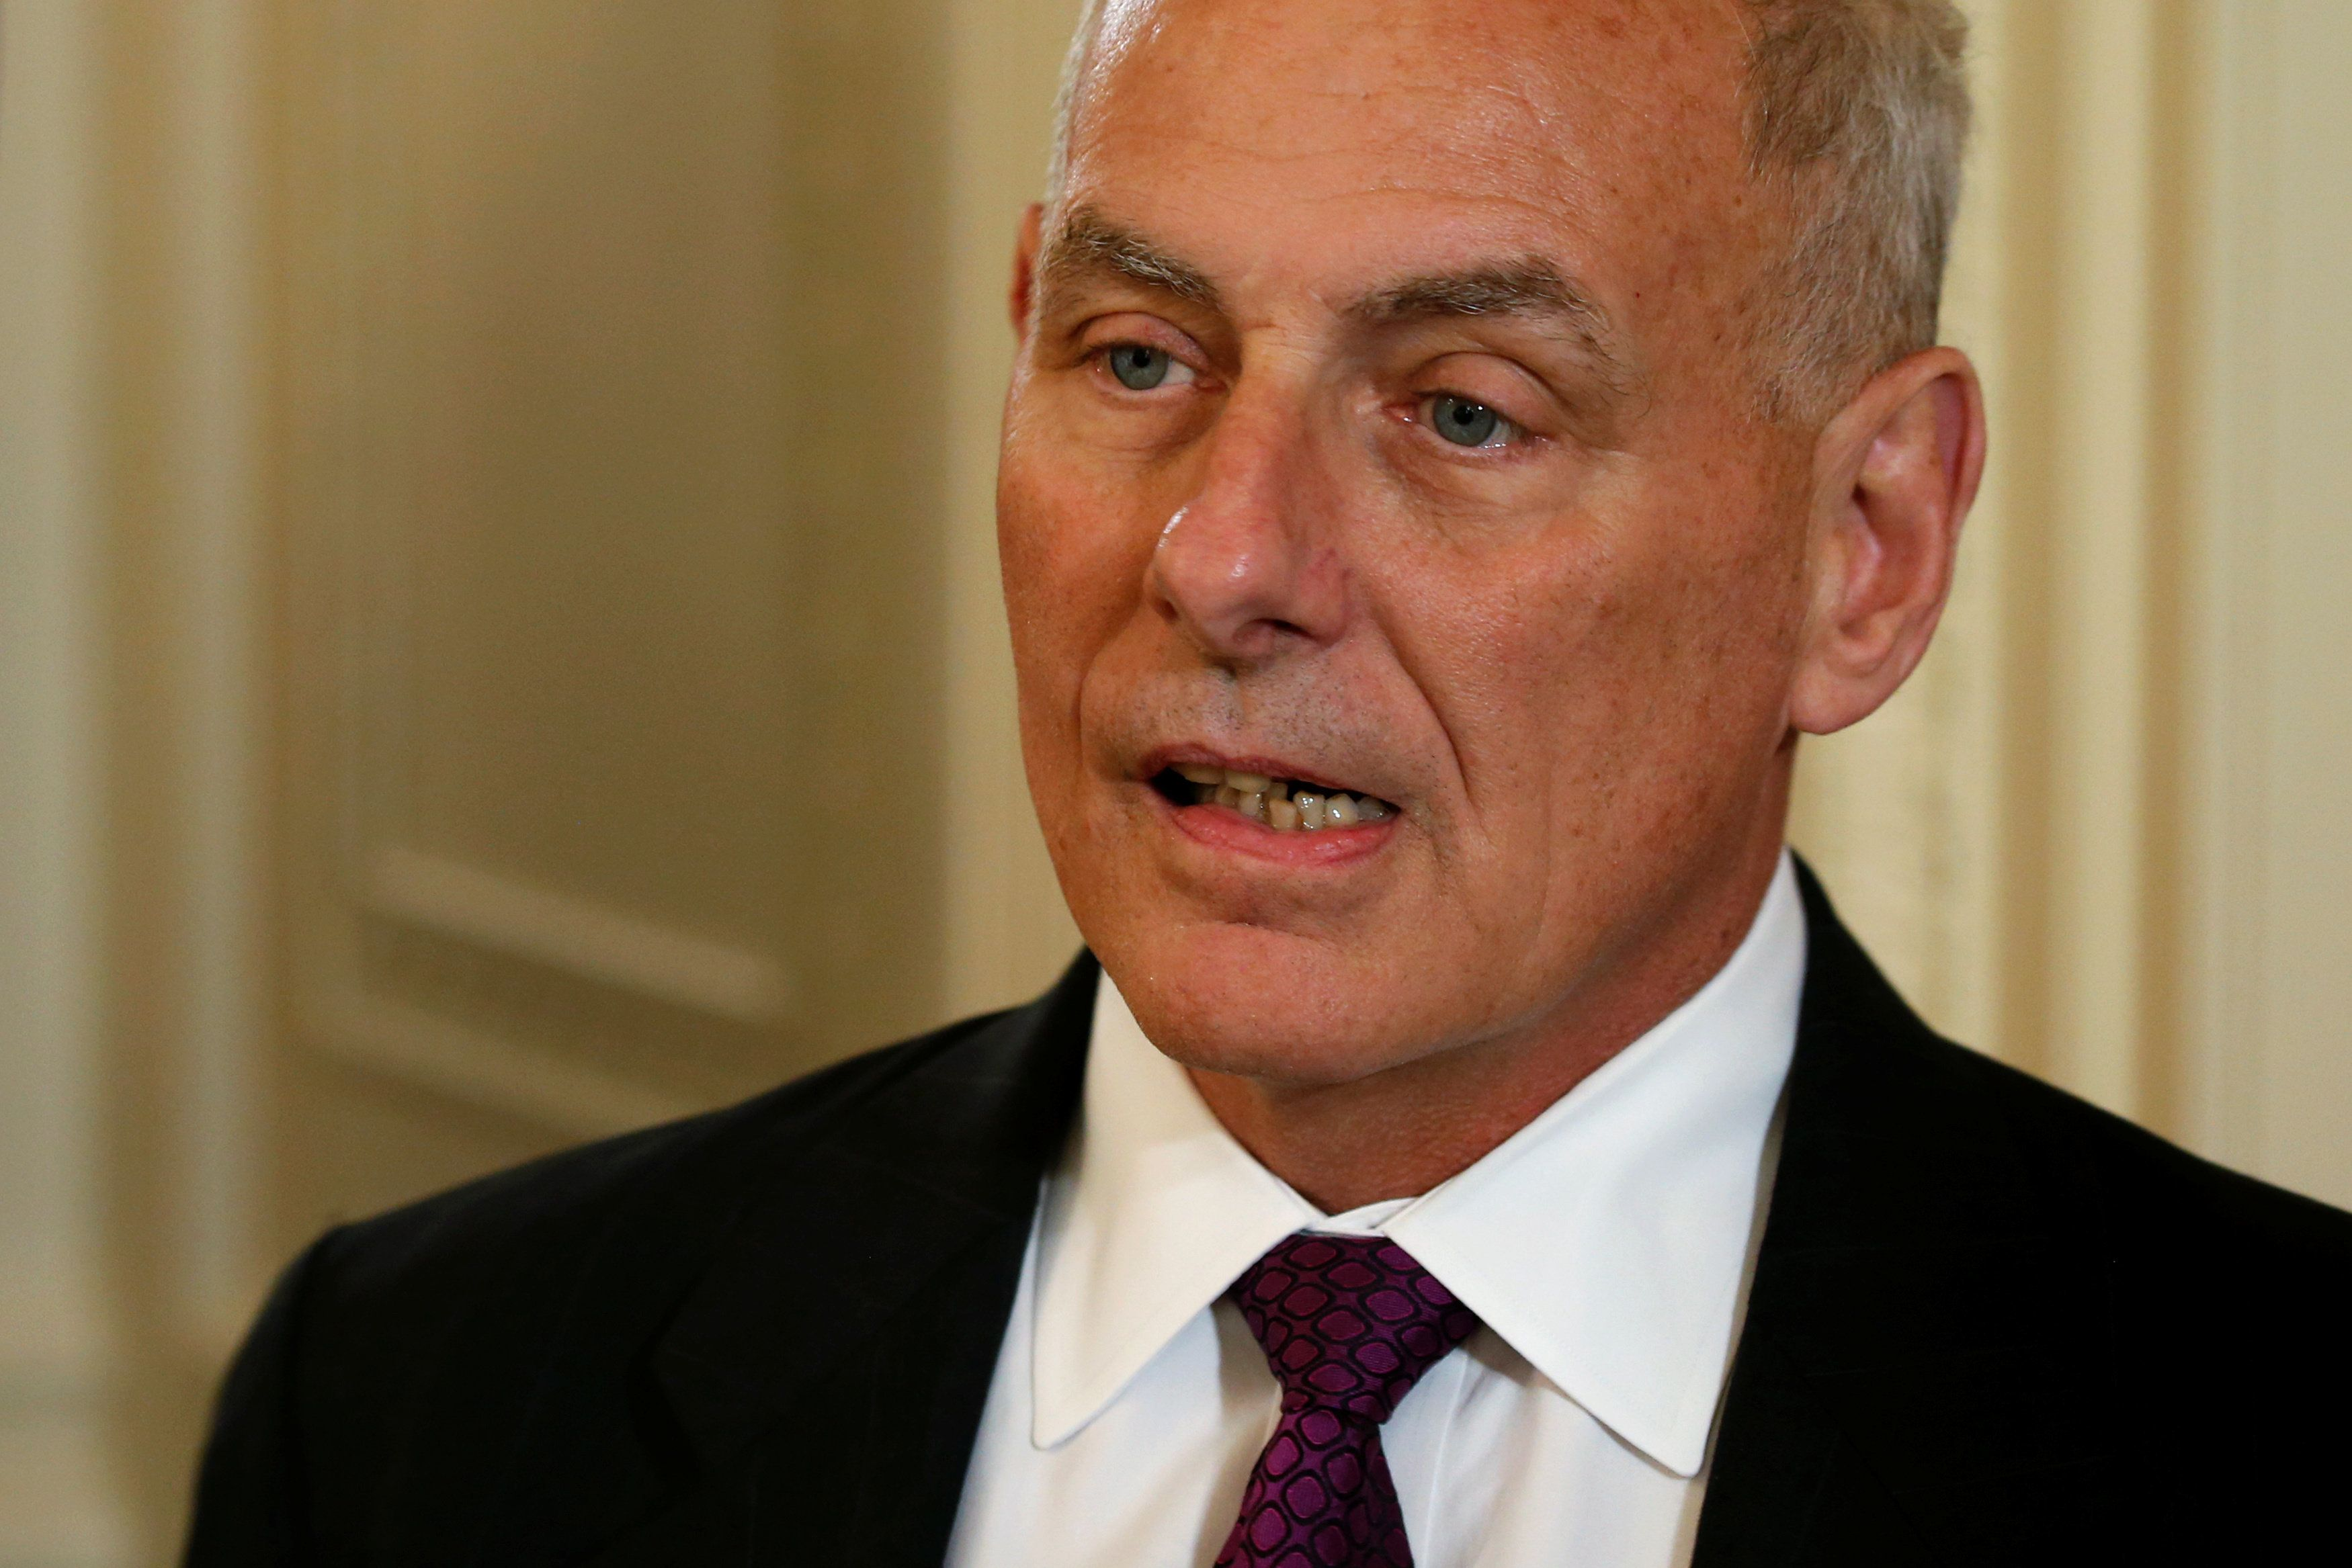 John Kelly above replaced Reince Priebus as chief of staff in July 2017